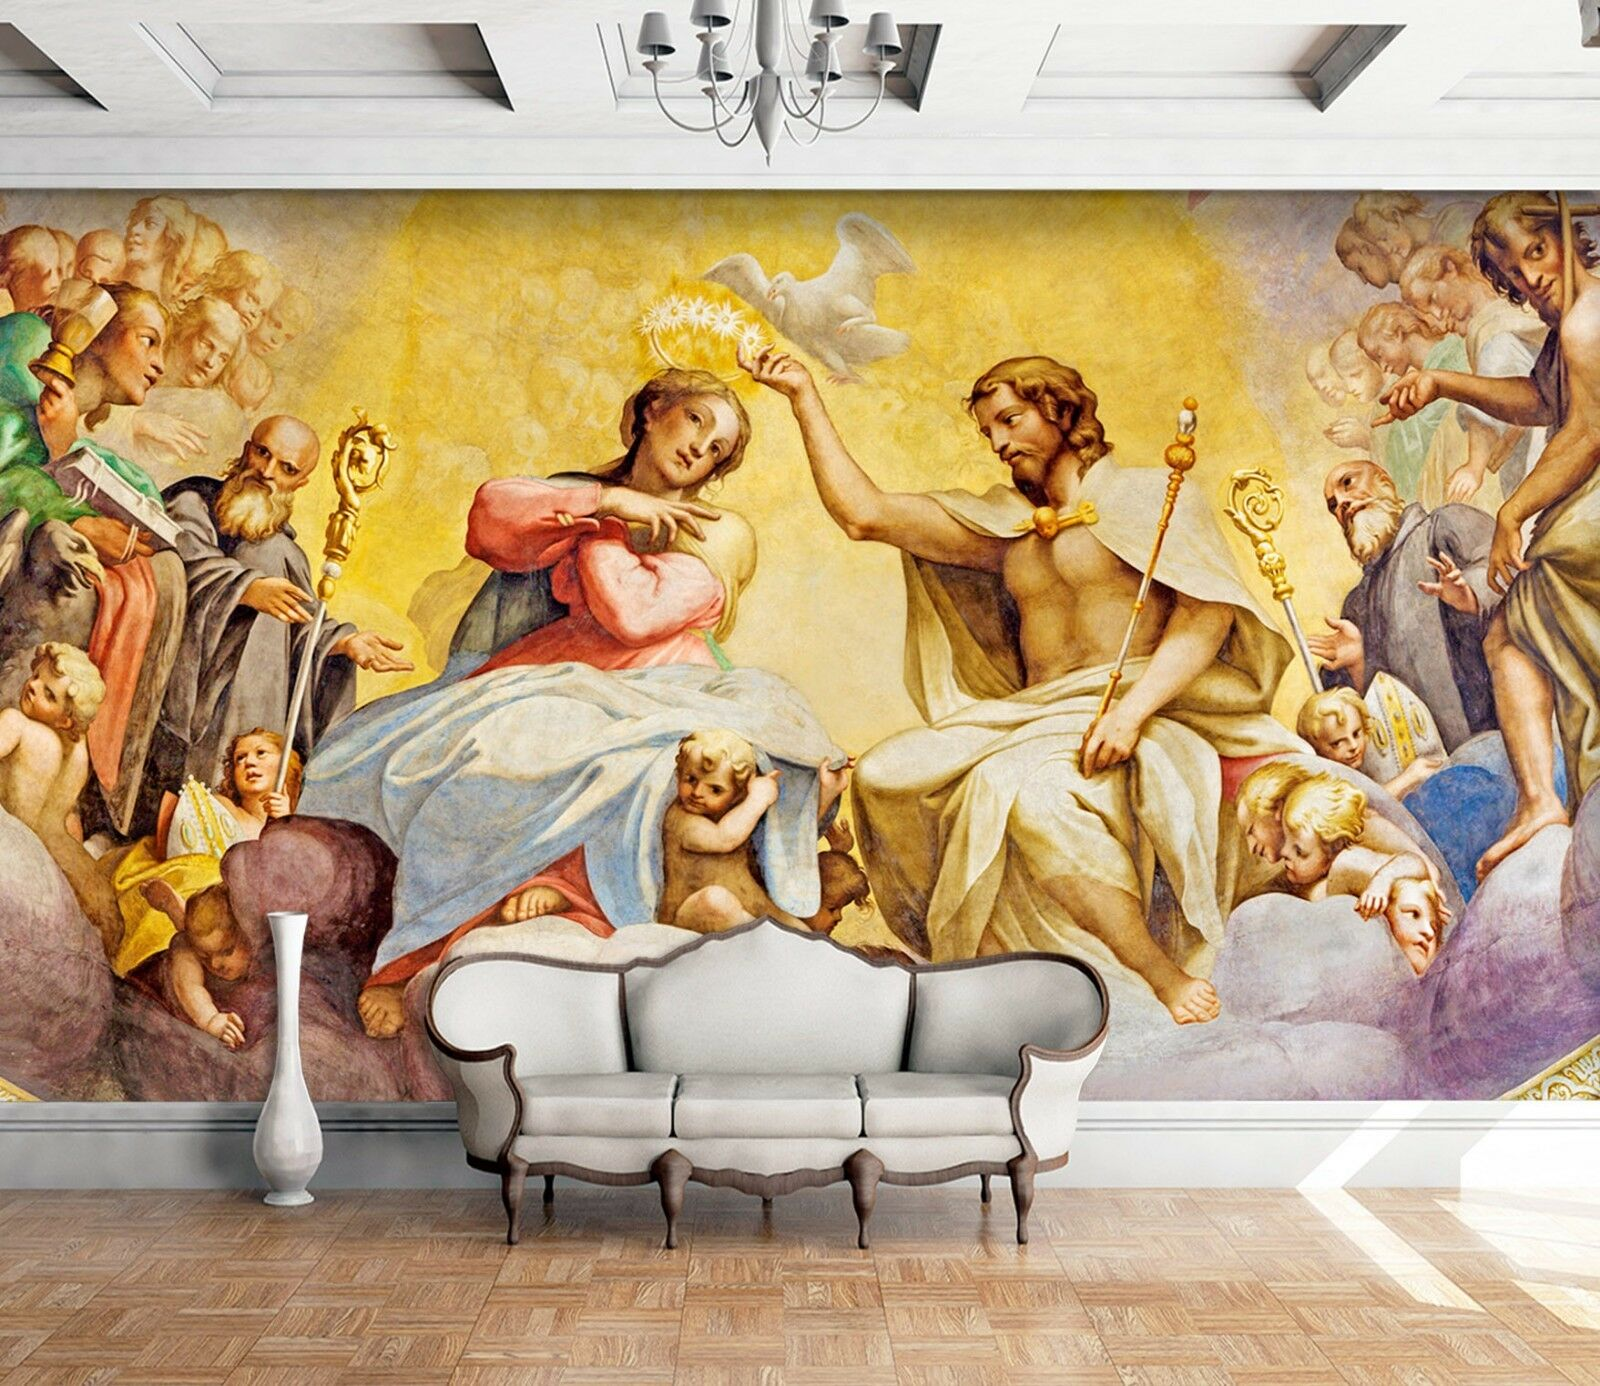 3D Adam And Eve Church 8 Wallpaper Mural Print Wall Indoor Wallpaper Murals UK